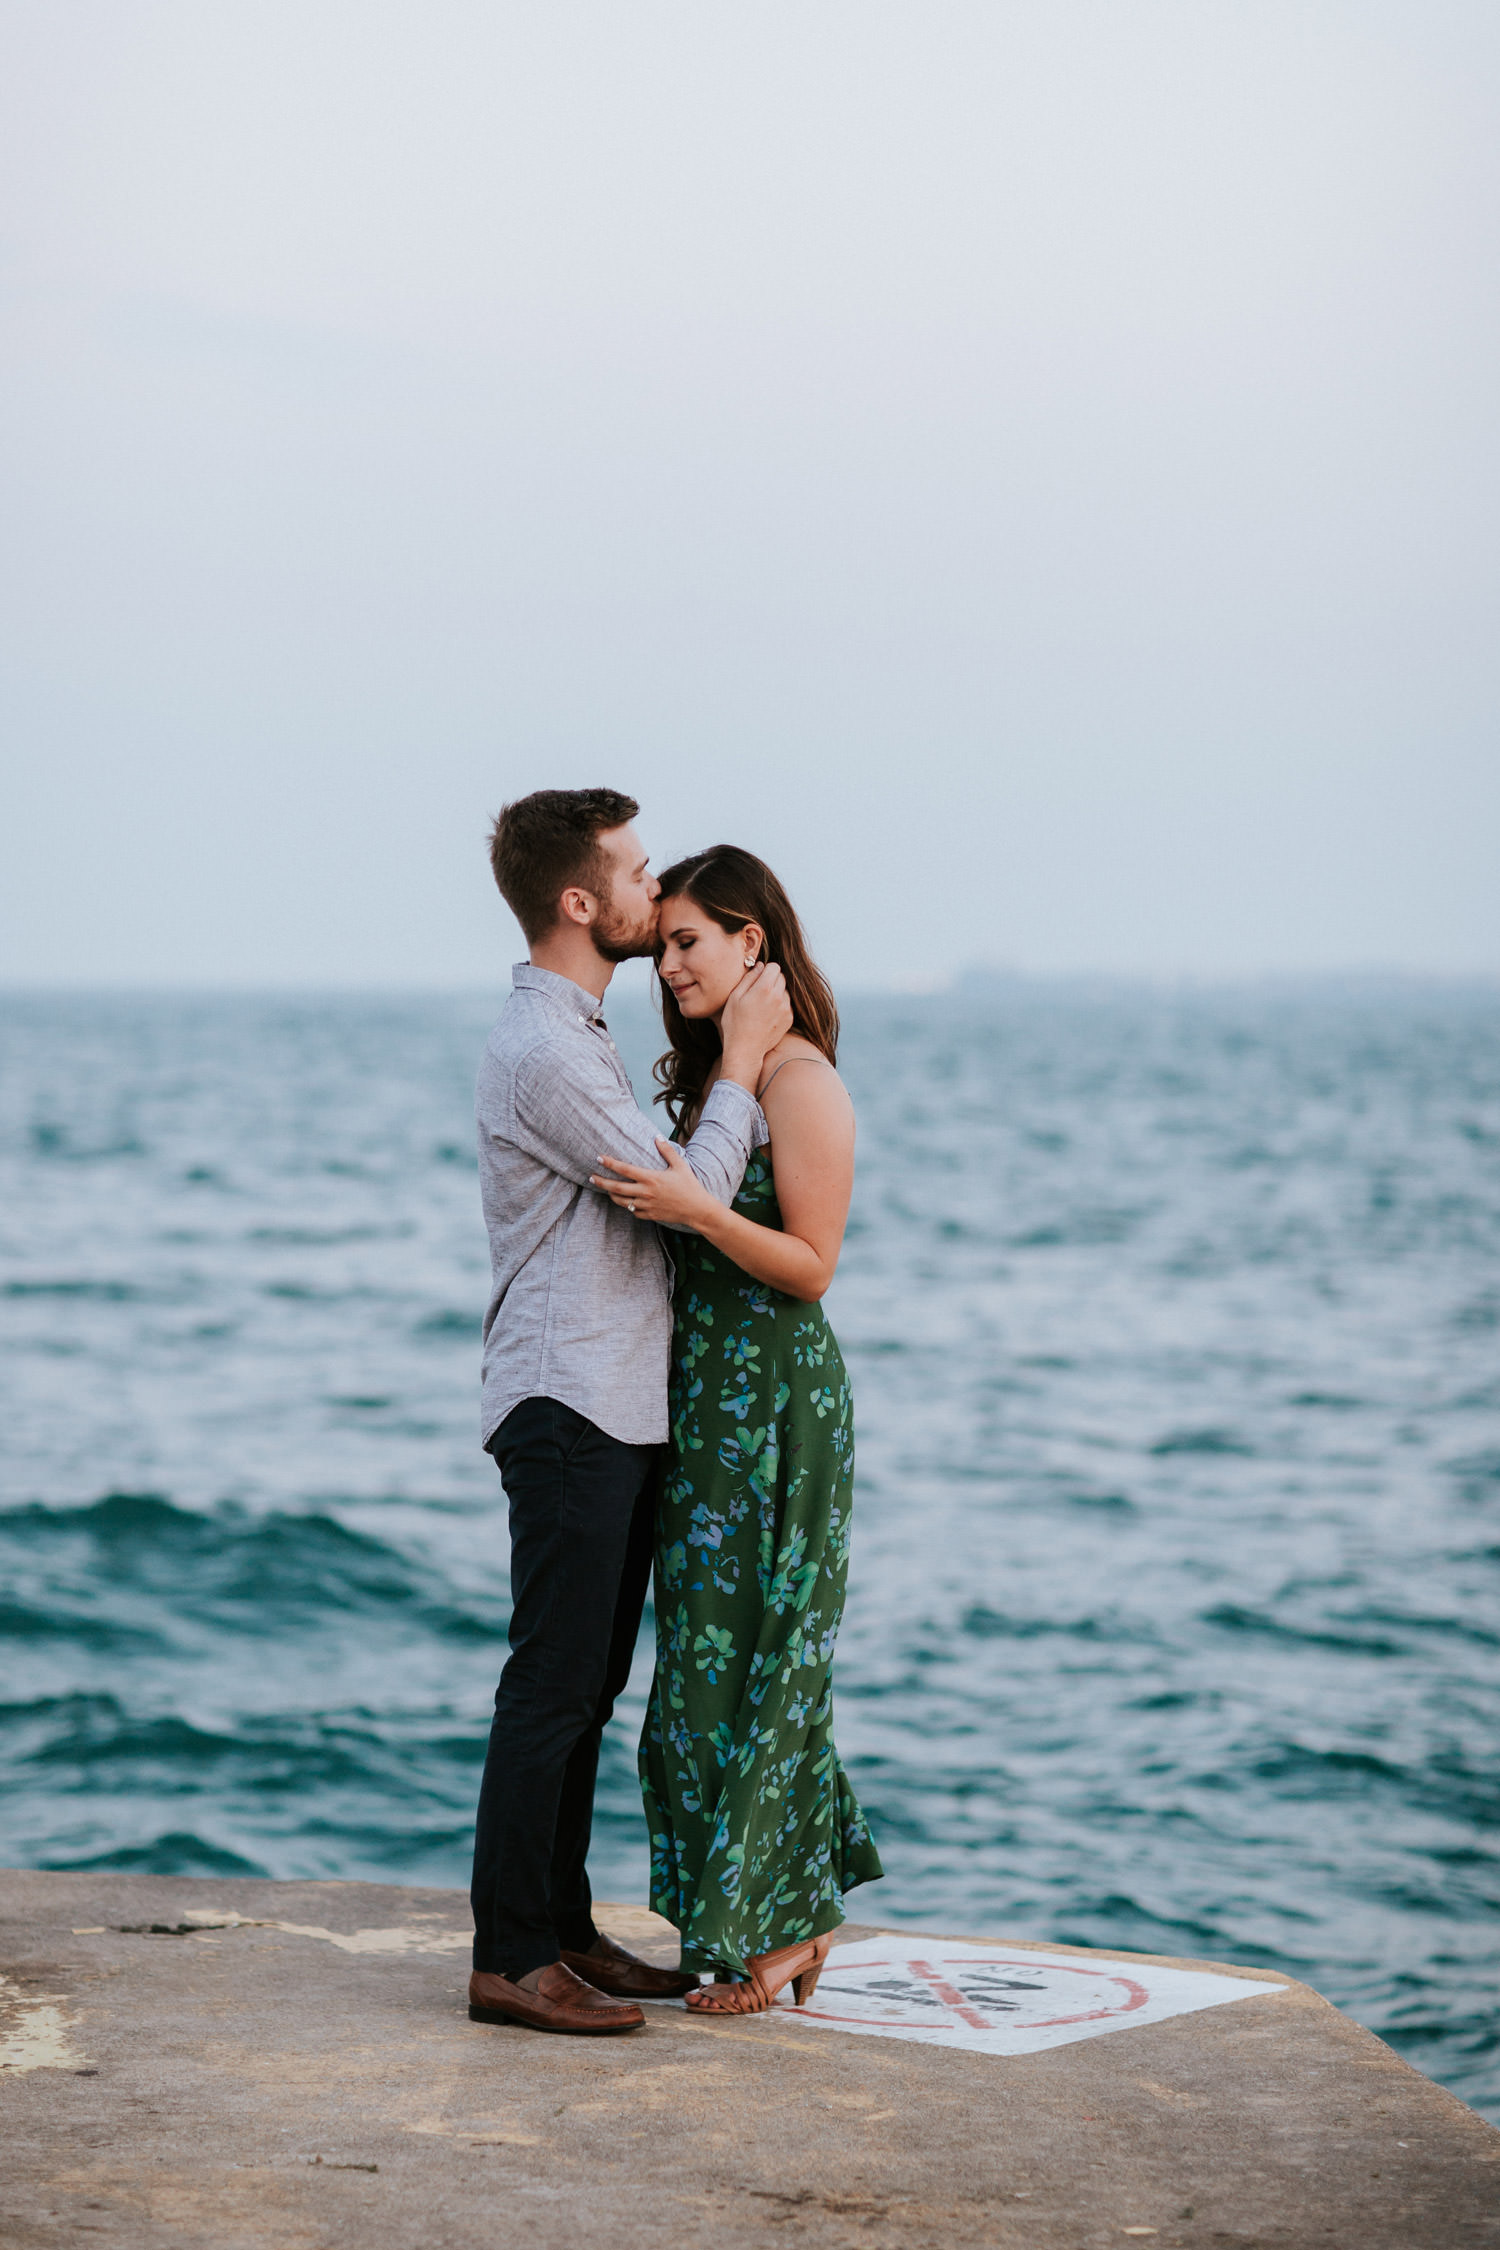 lincoln park engagement session by lake michigan in Chicago